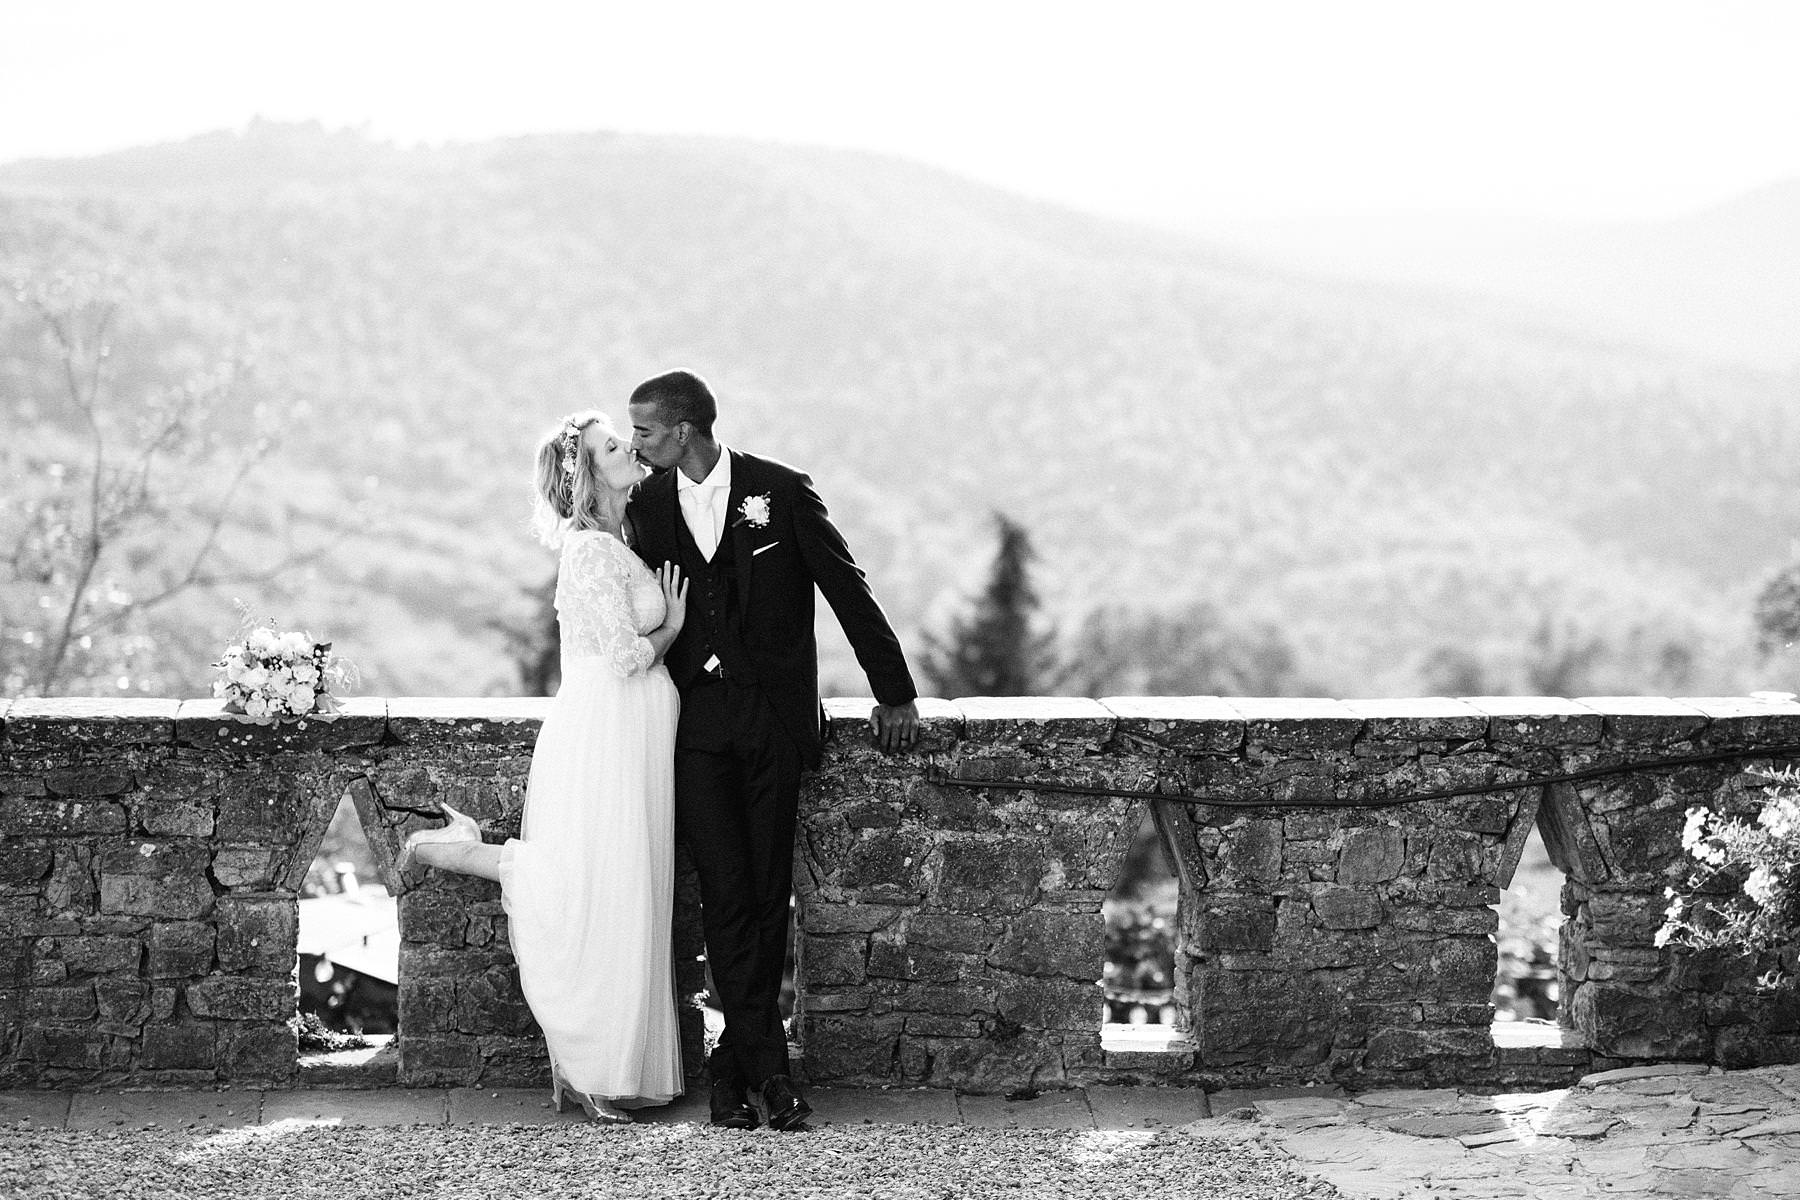 Lovely wedding portrait on a terrace overlooking rolling hills of the countryside of Tuscany at the historic residence of Montelucci Country Resort located between Chianti and Valdarno a perfect place for a destination wedding